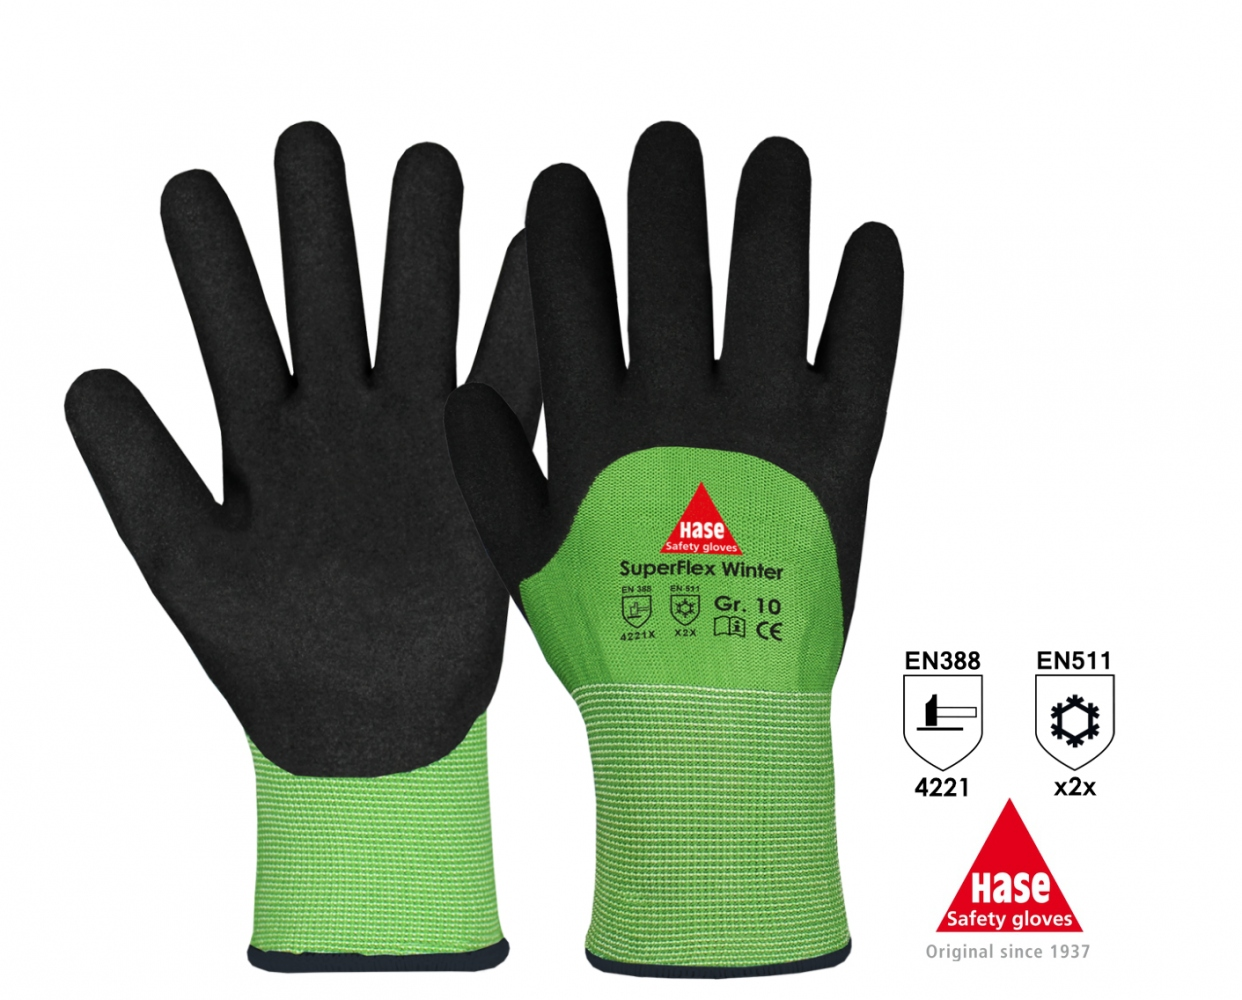 pics/hase-safety-gloves/hase-508620-hase-superflex-winter-arbeitshandschuhe.jpg